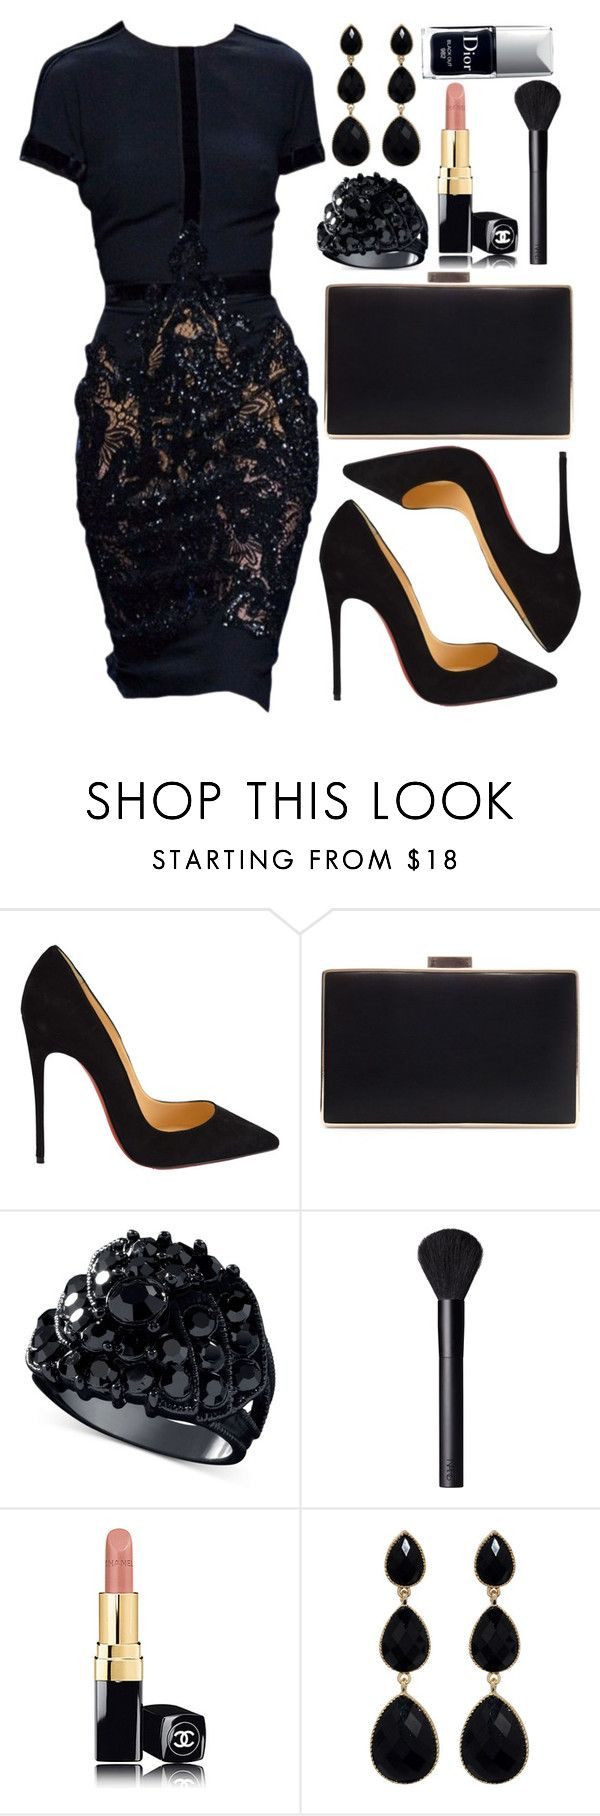 """Untitled #3628"" by natalyasidunova ❤ liked on Polyvore featuring Christian Louboutin, Zara, GUESS, NARS Cosmetics, Chanel, Amrita Singh and Christian Dior"